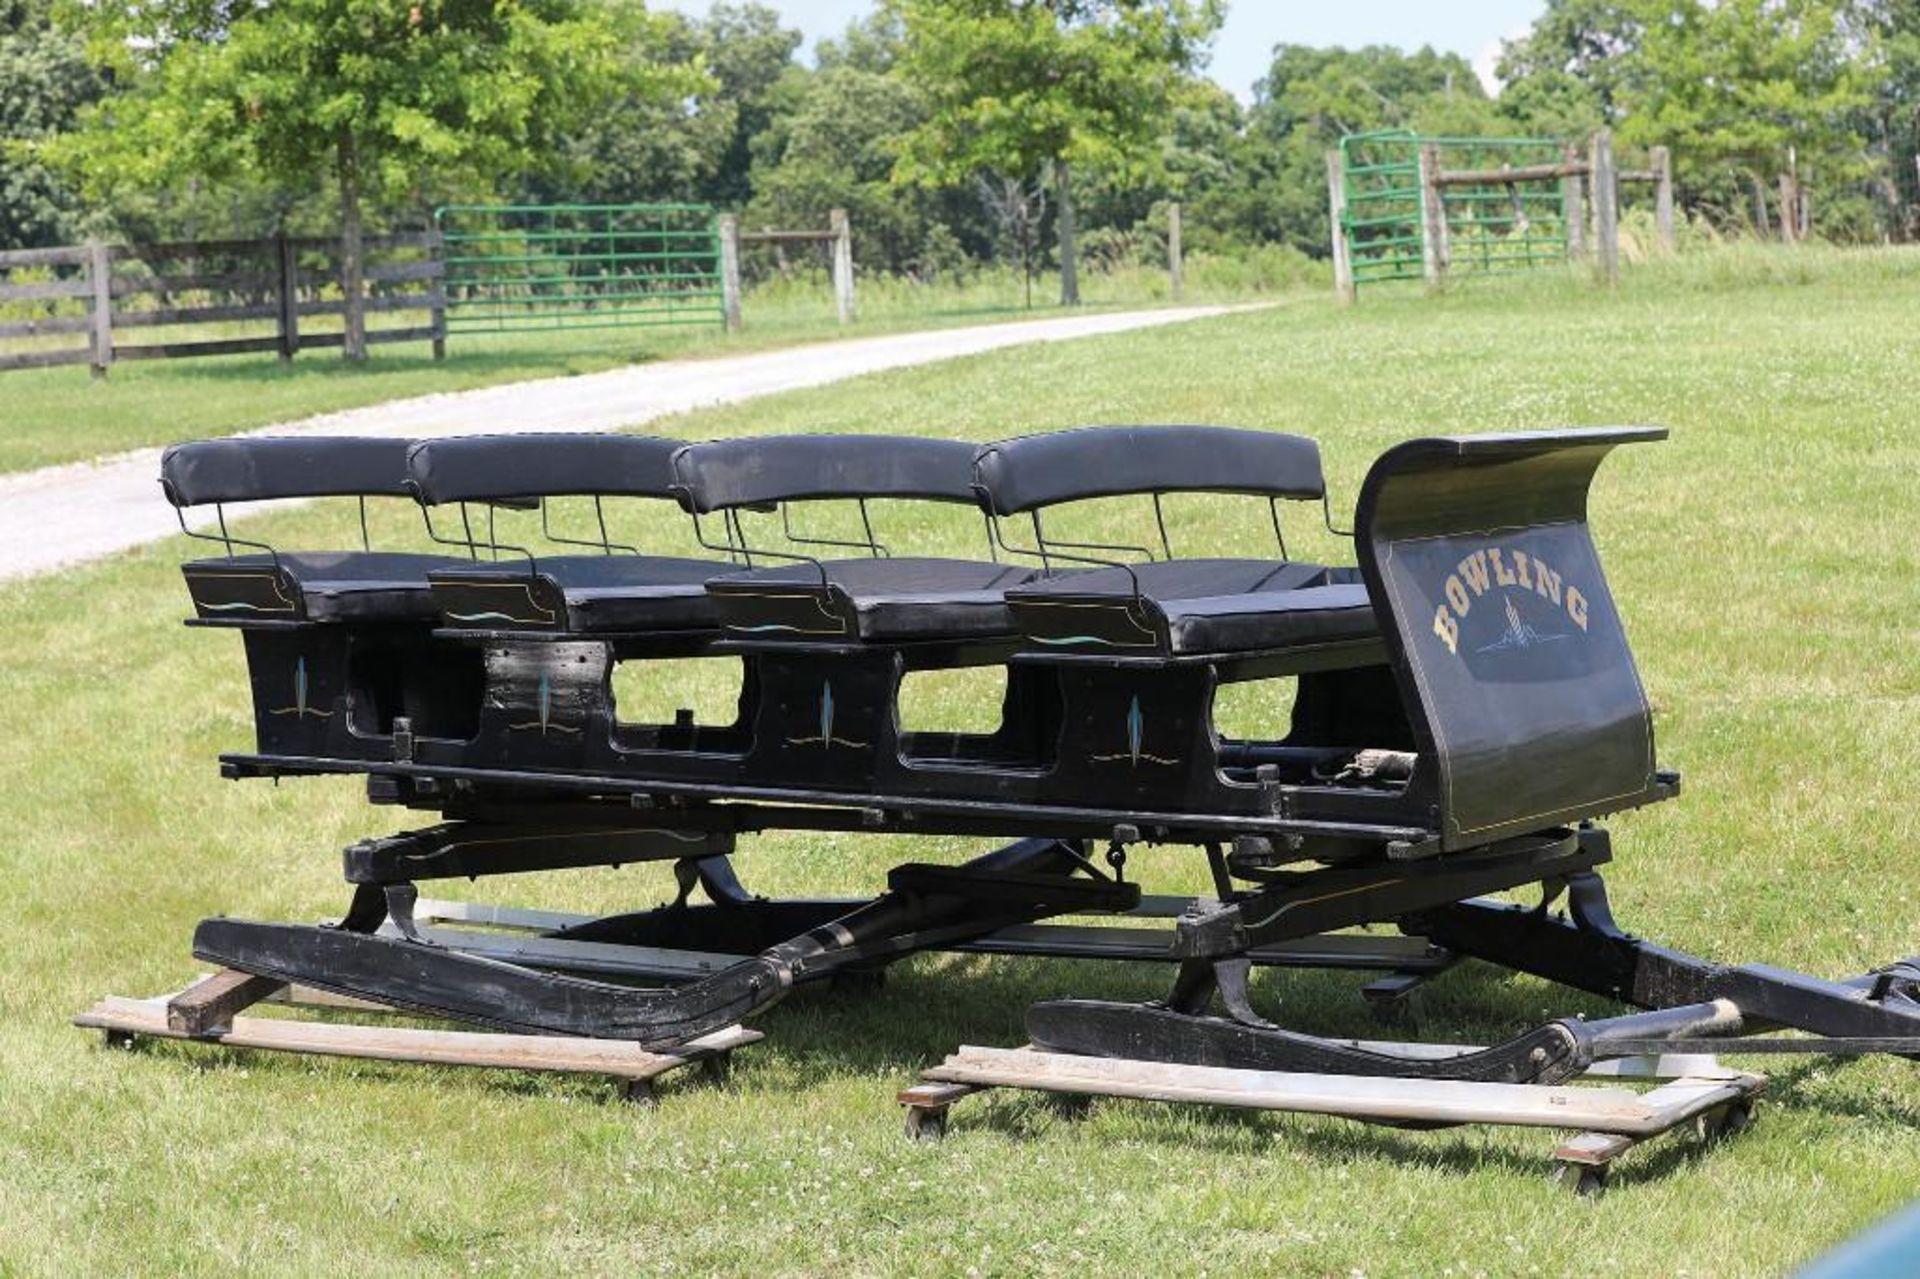 New 4-Seat Bobsled, Custom-Built - Image 2 of 2